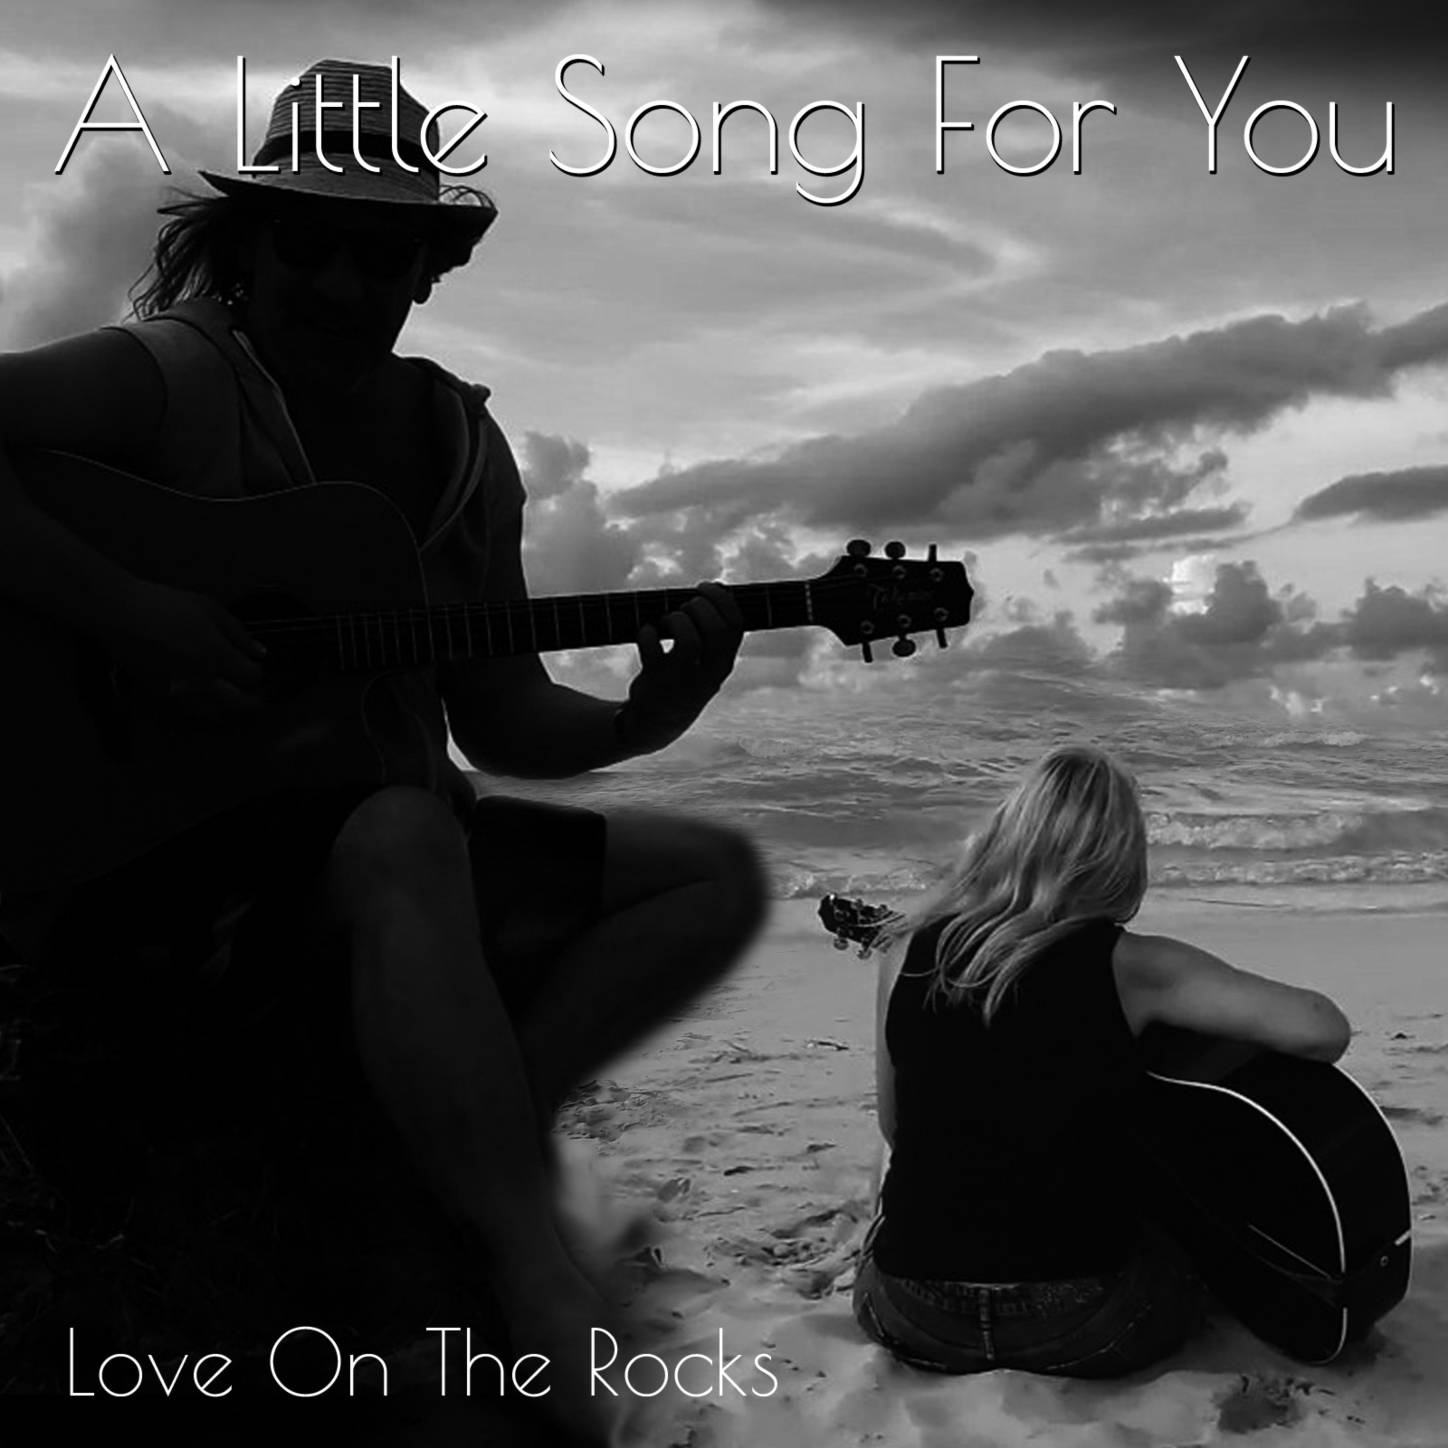 A Little Song For You